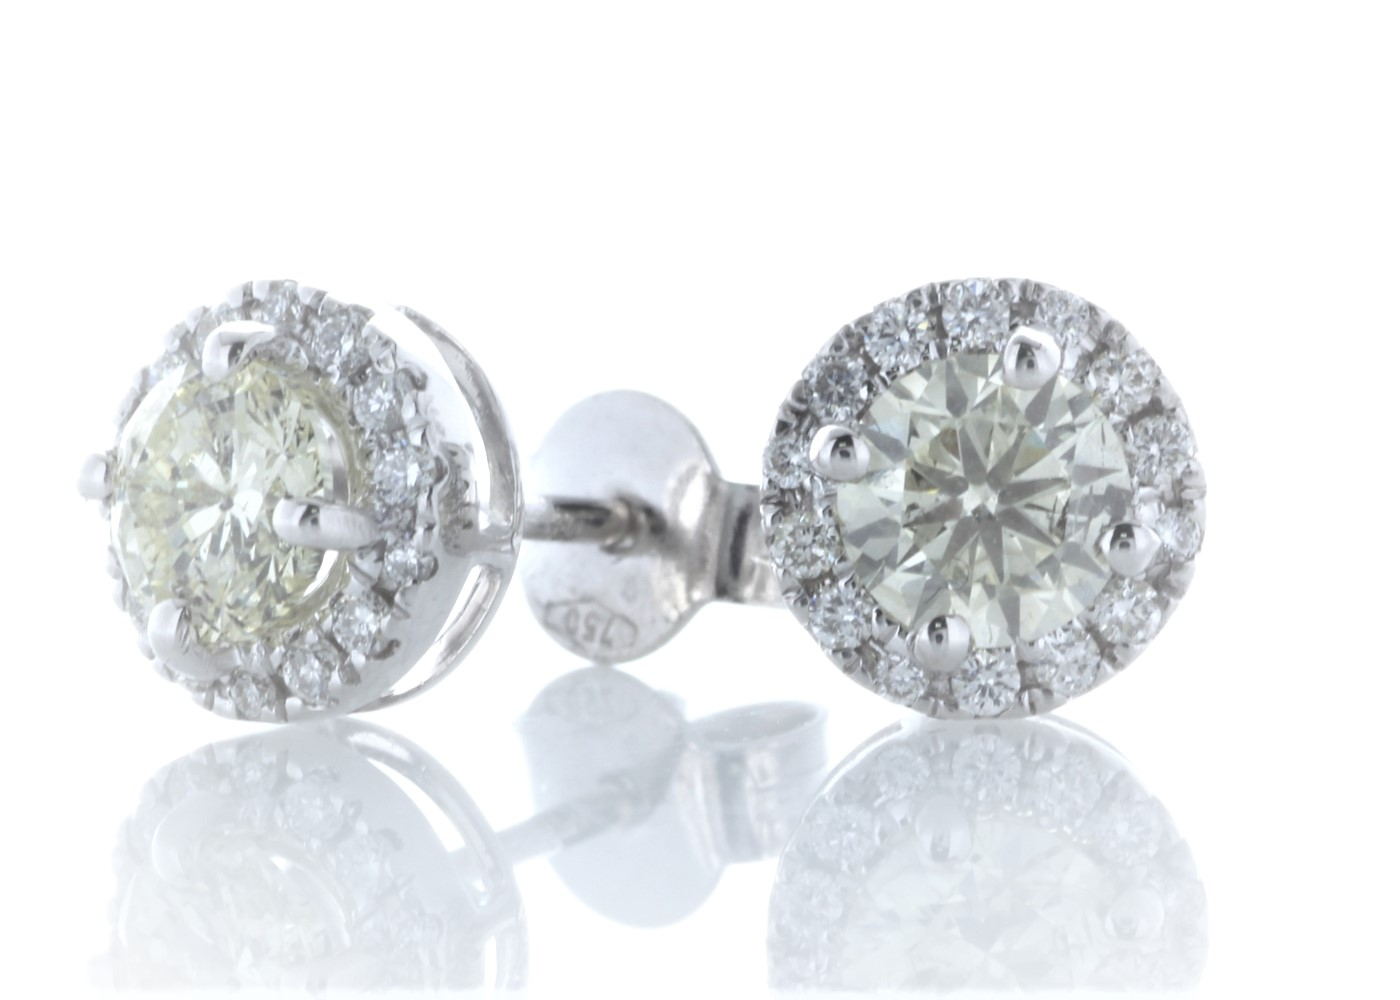 Lot 39 - 18ct White Gold Halo Set Earrings 1.29 Carats